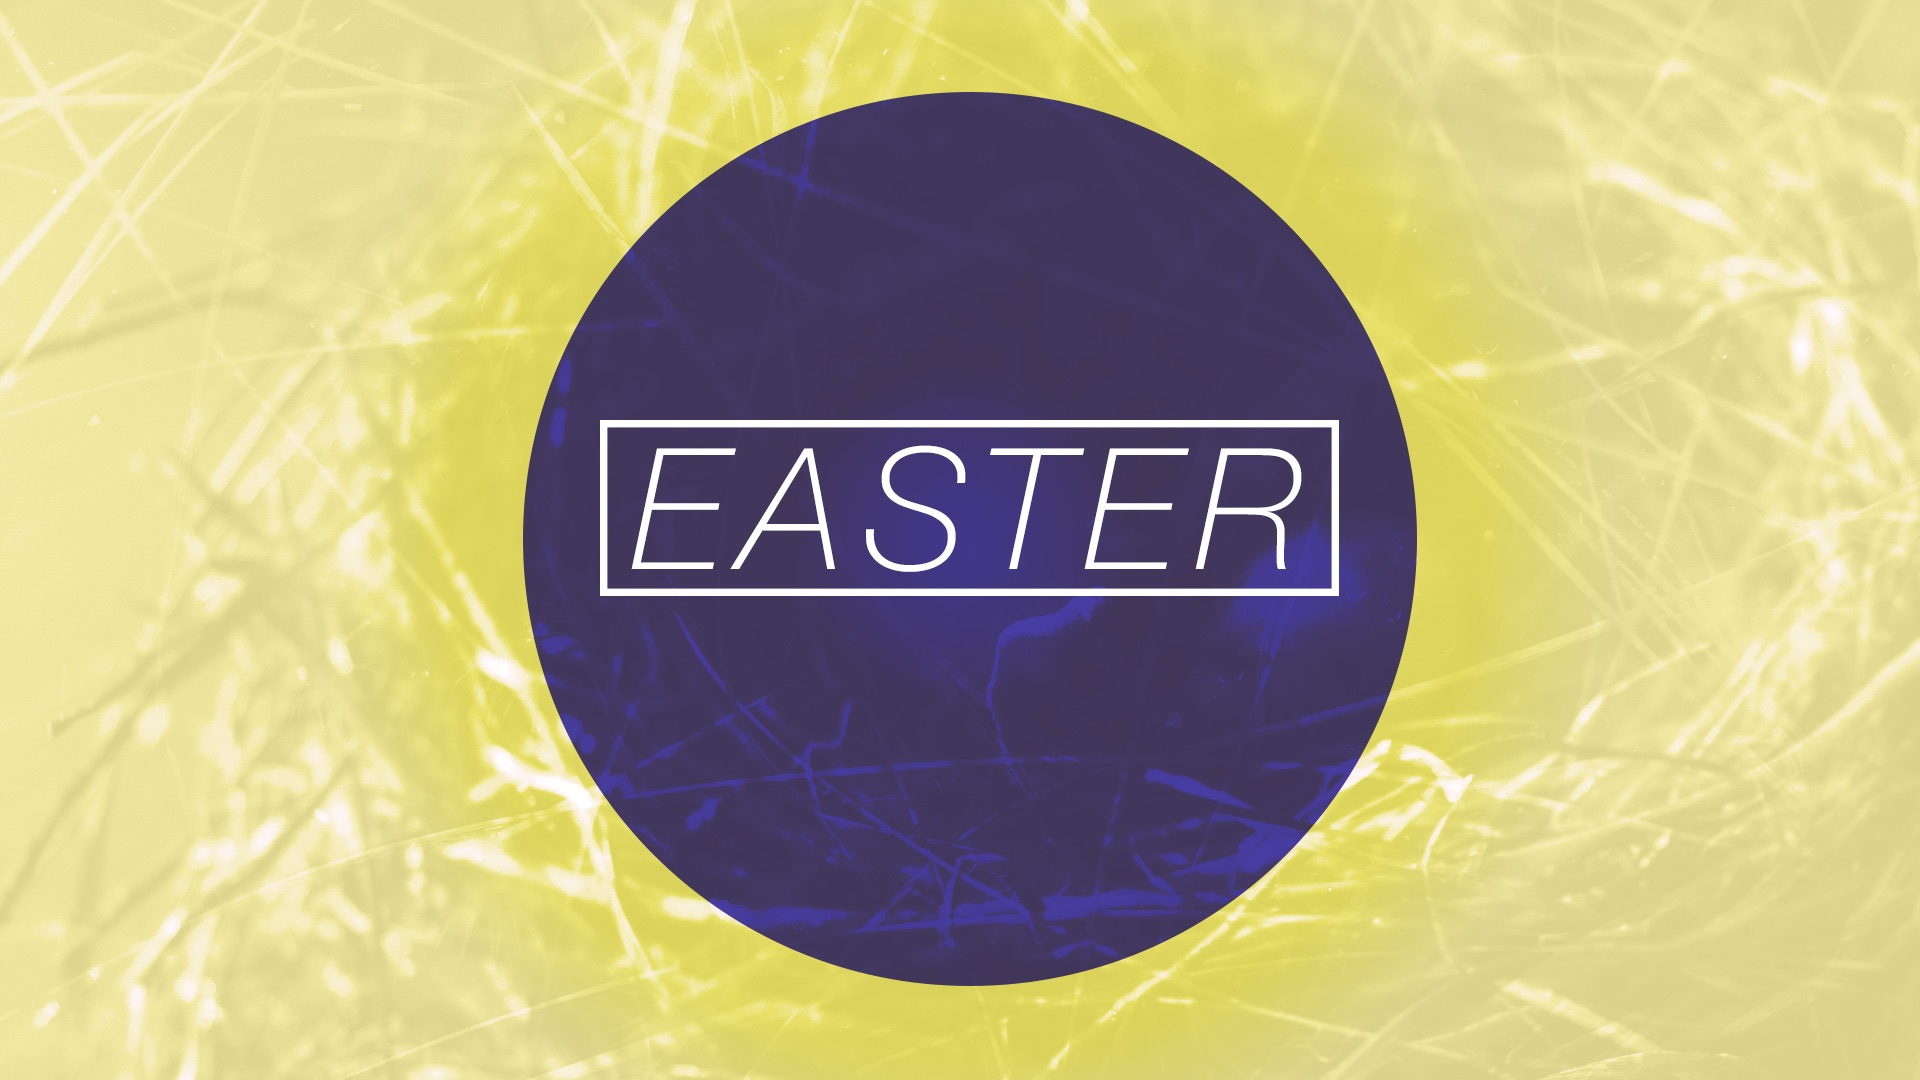 Our Resurrecting God (Easter)